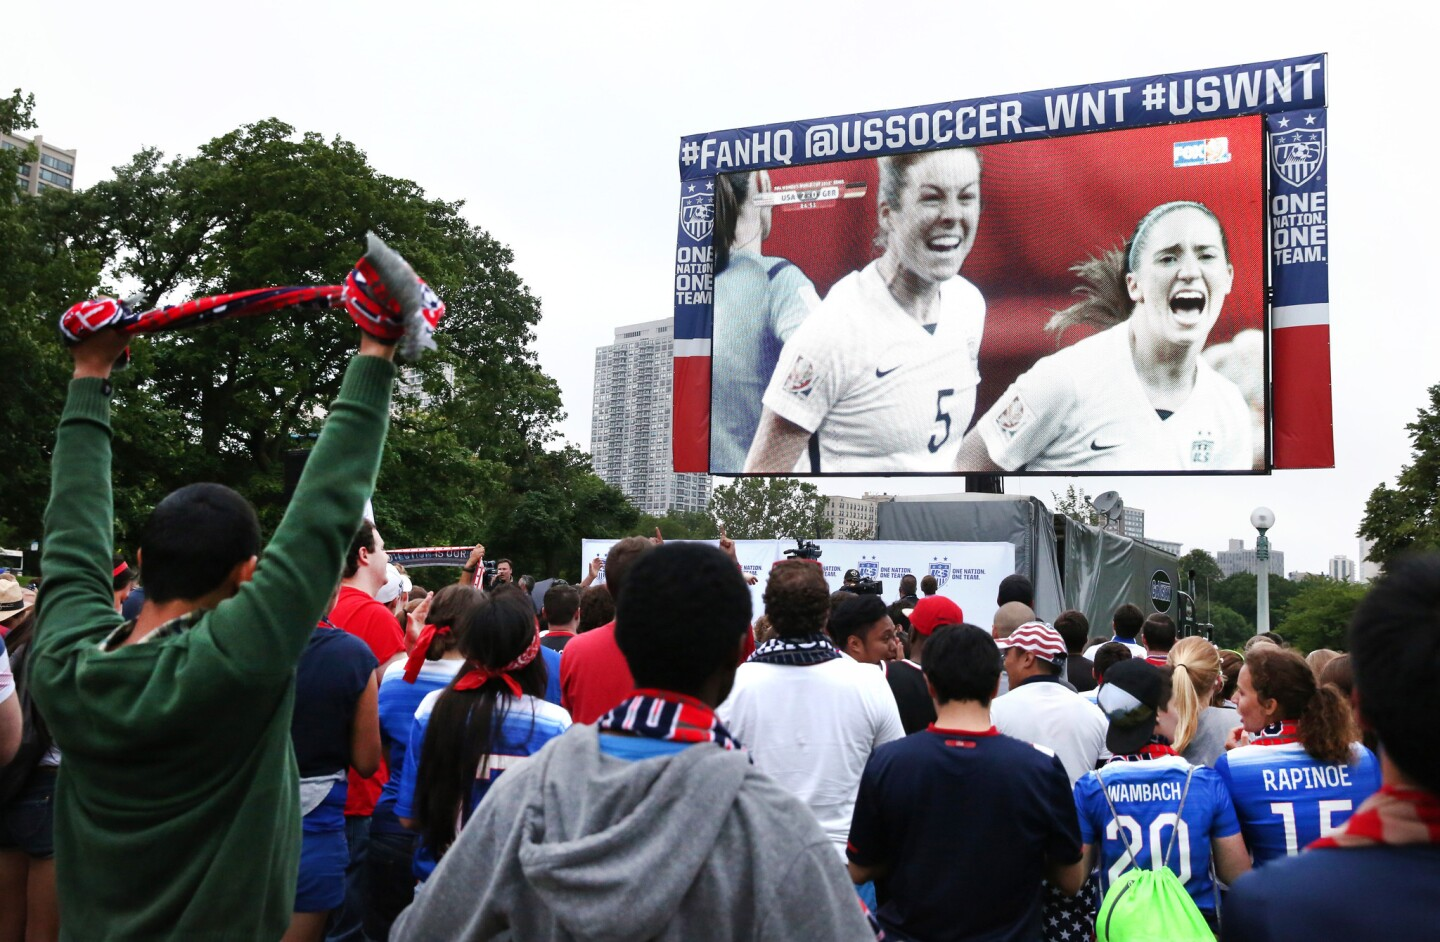 A giant screen at a viewing party in Lincoln Park shows U.S. Women's soccer player Kelley O'Hara (5) celebrating June 30, 2015, after her goal.